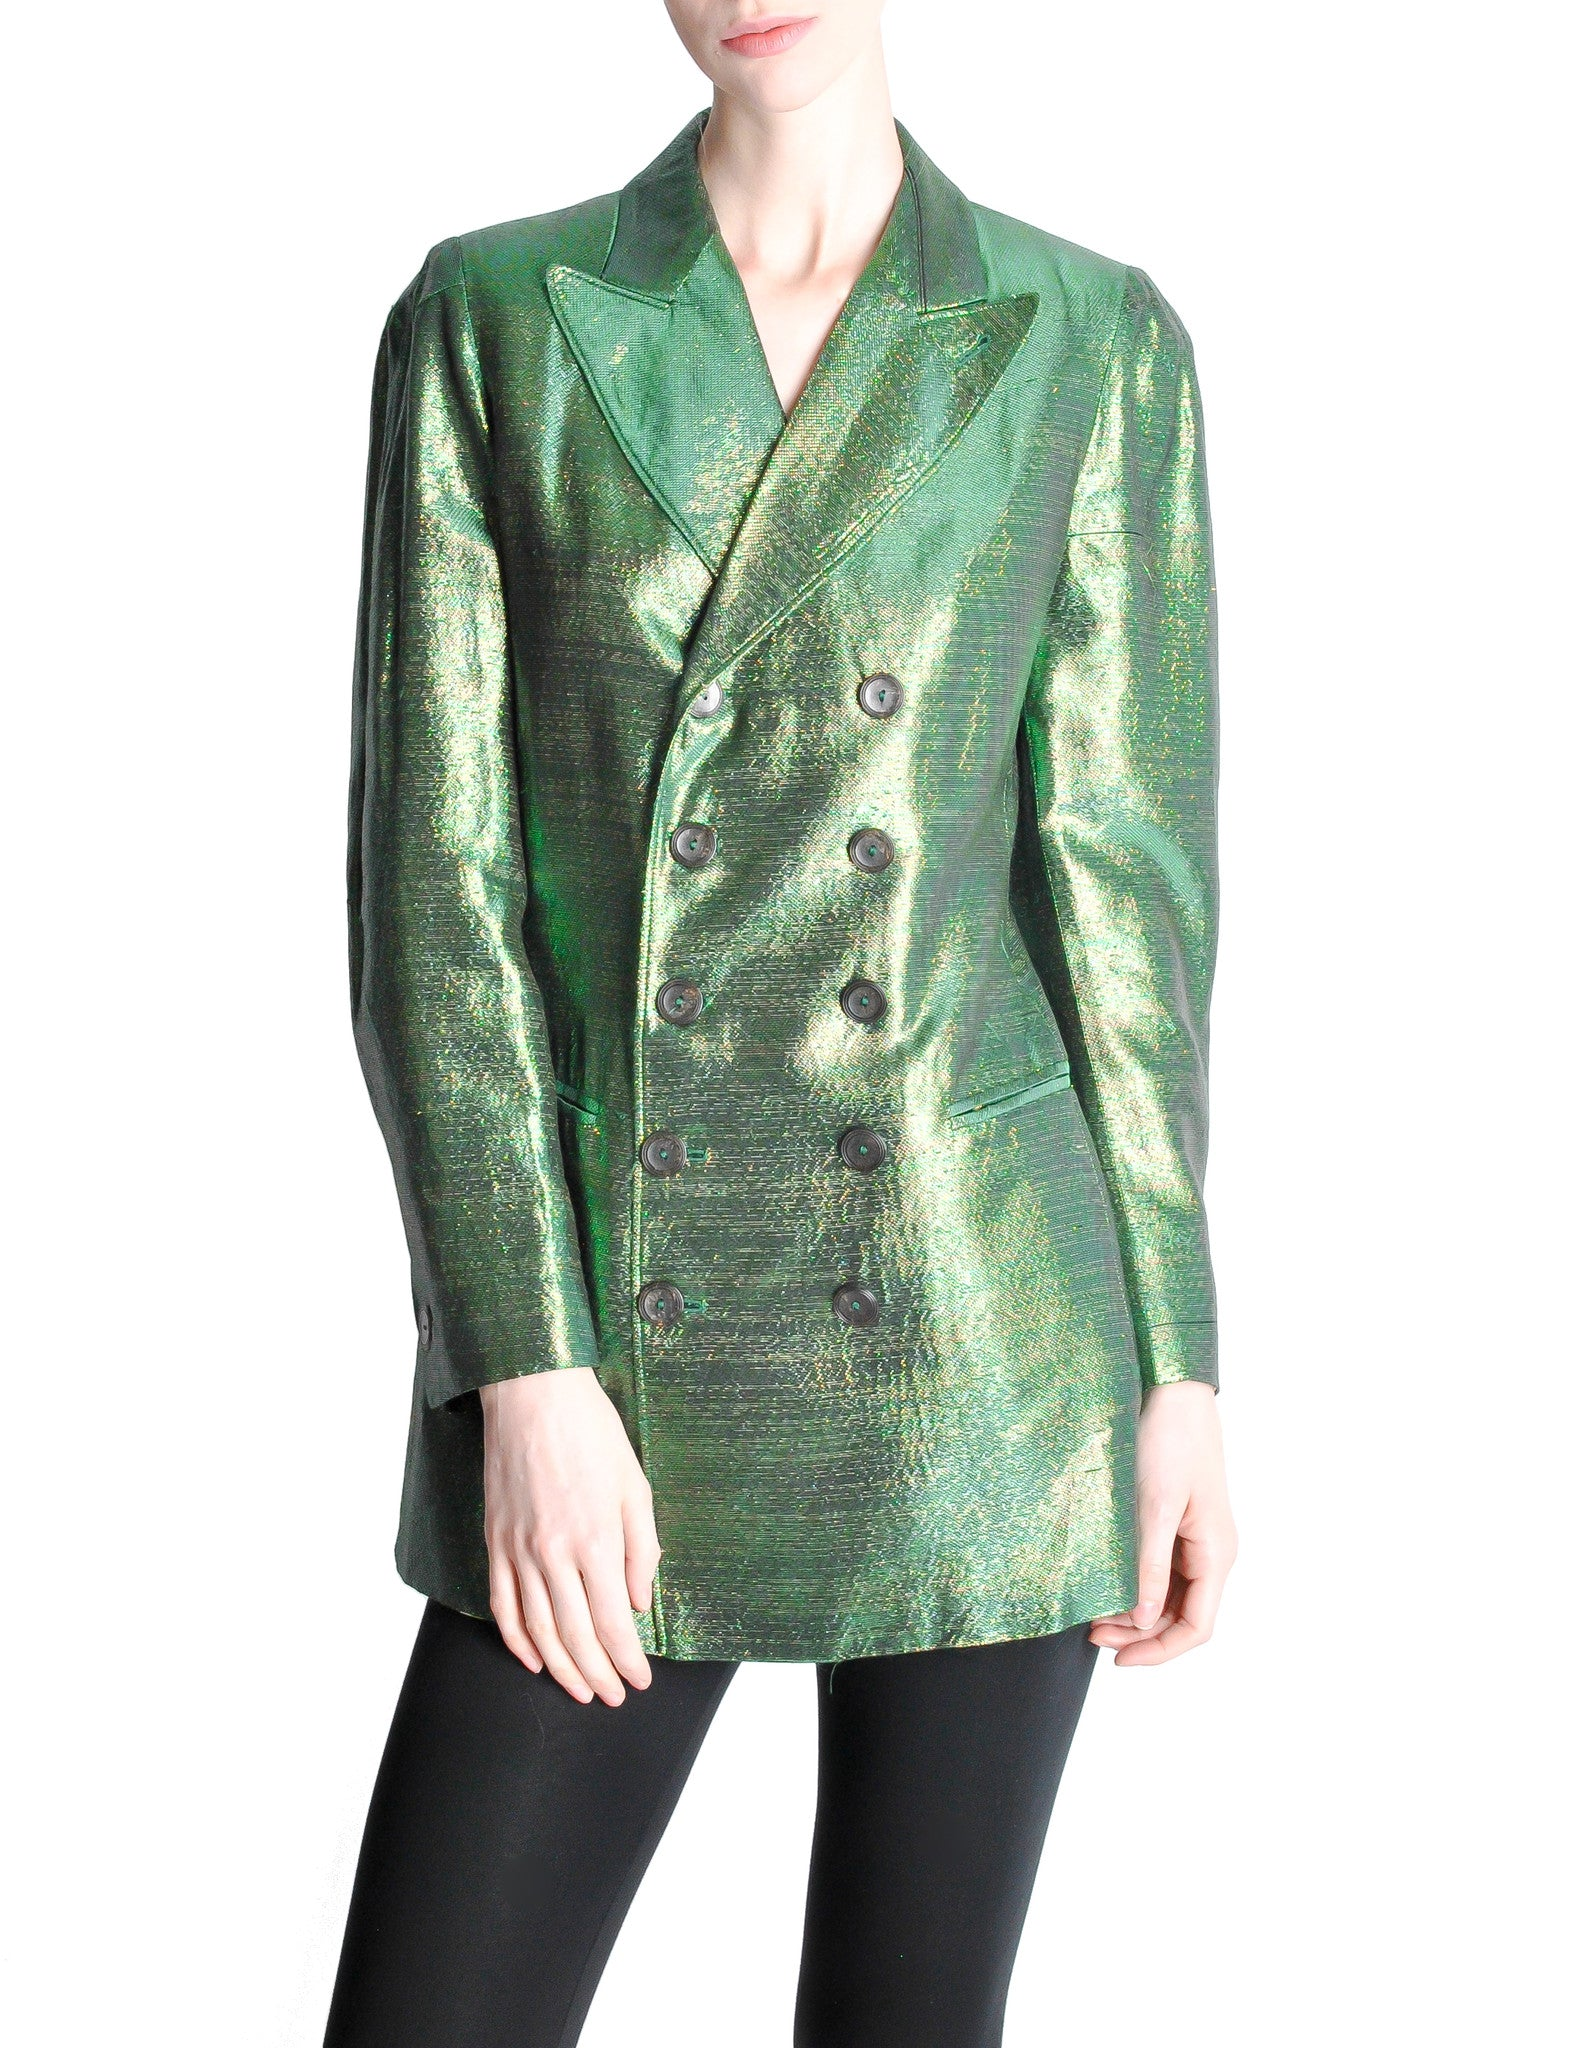 Jean Paul Gaultier Vintage Metallic Green Jacket - Amarcord Vintage Fashion  - 1